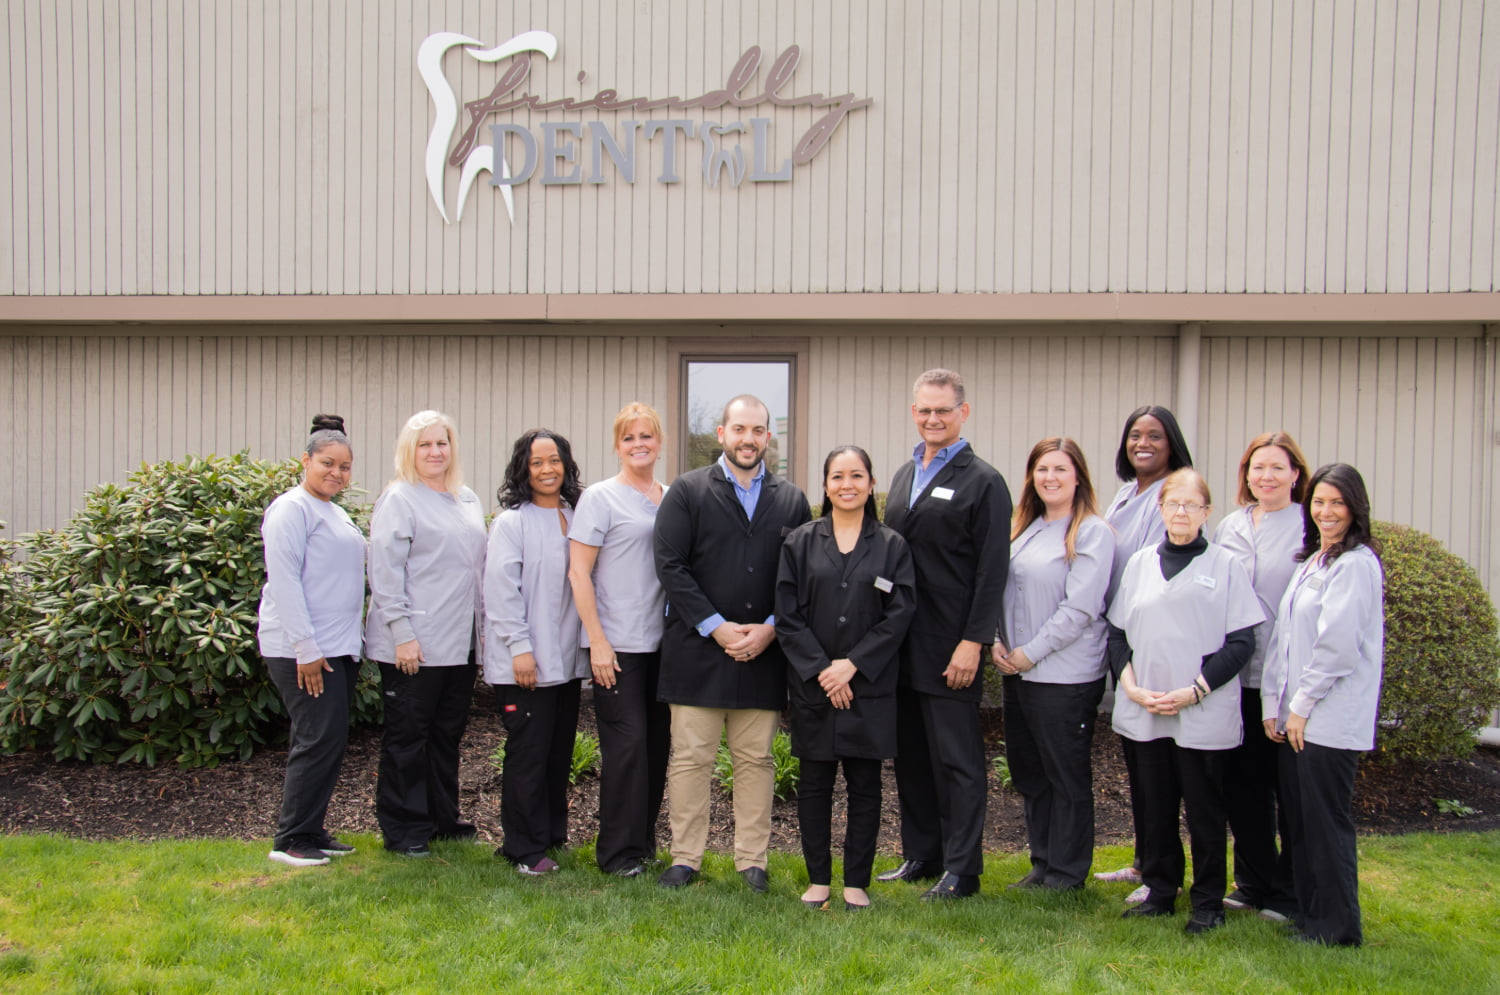 Meet the Team - At Friendly Dental it's our mission to help you enjoy beautiful and healthy smiles. Through a customized combination of preventive, restorative, and cosmetic procedures that use state-of-the-art technologies, you will be able to smile and laugh with confidence. We are proud to offer you personal attention in a warm and comfortable atmosphere. Our team always does its best to treat everyone well, we respect your feelings and concerns, and we try not to keep anyone waiting.